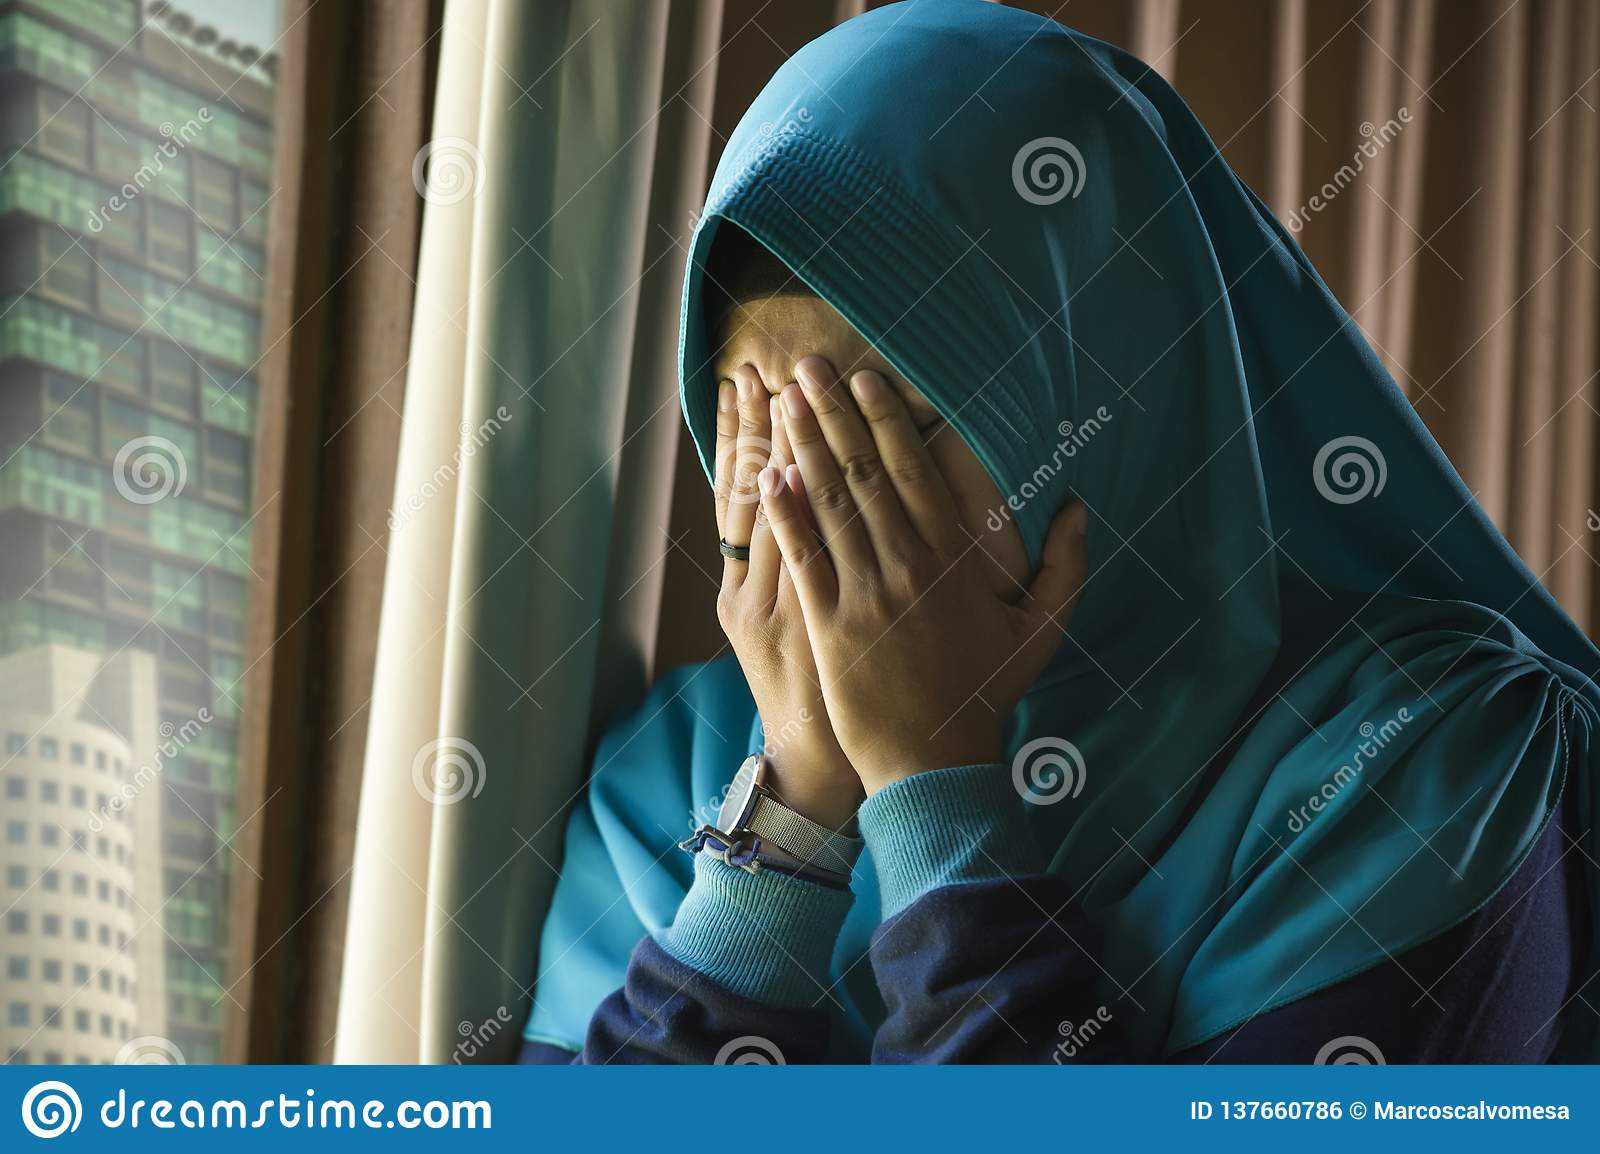 Young sad and depressed Muslim woman in Islam traditional Hijab head scarf at home window feeling unwell suffering depression